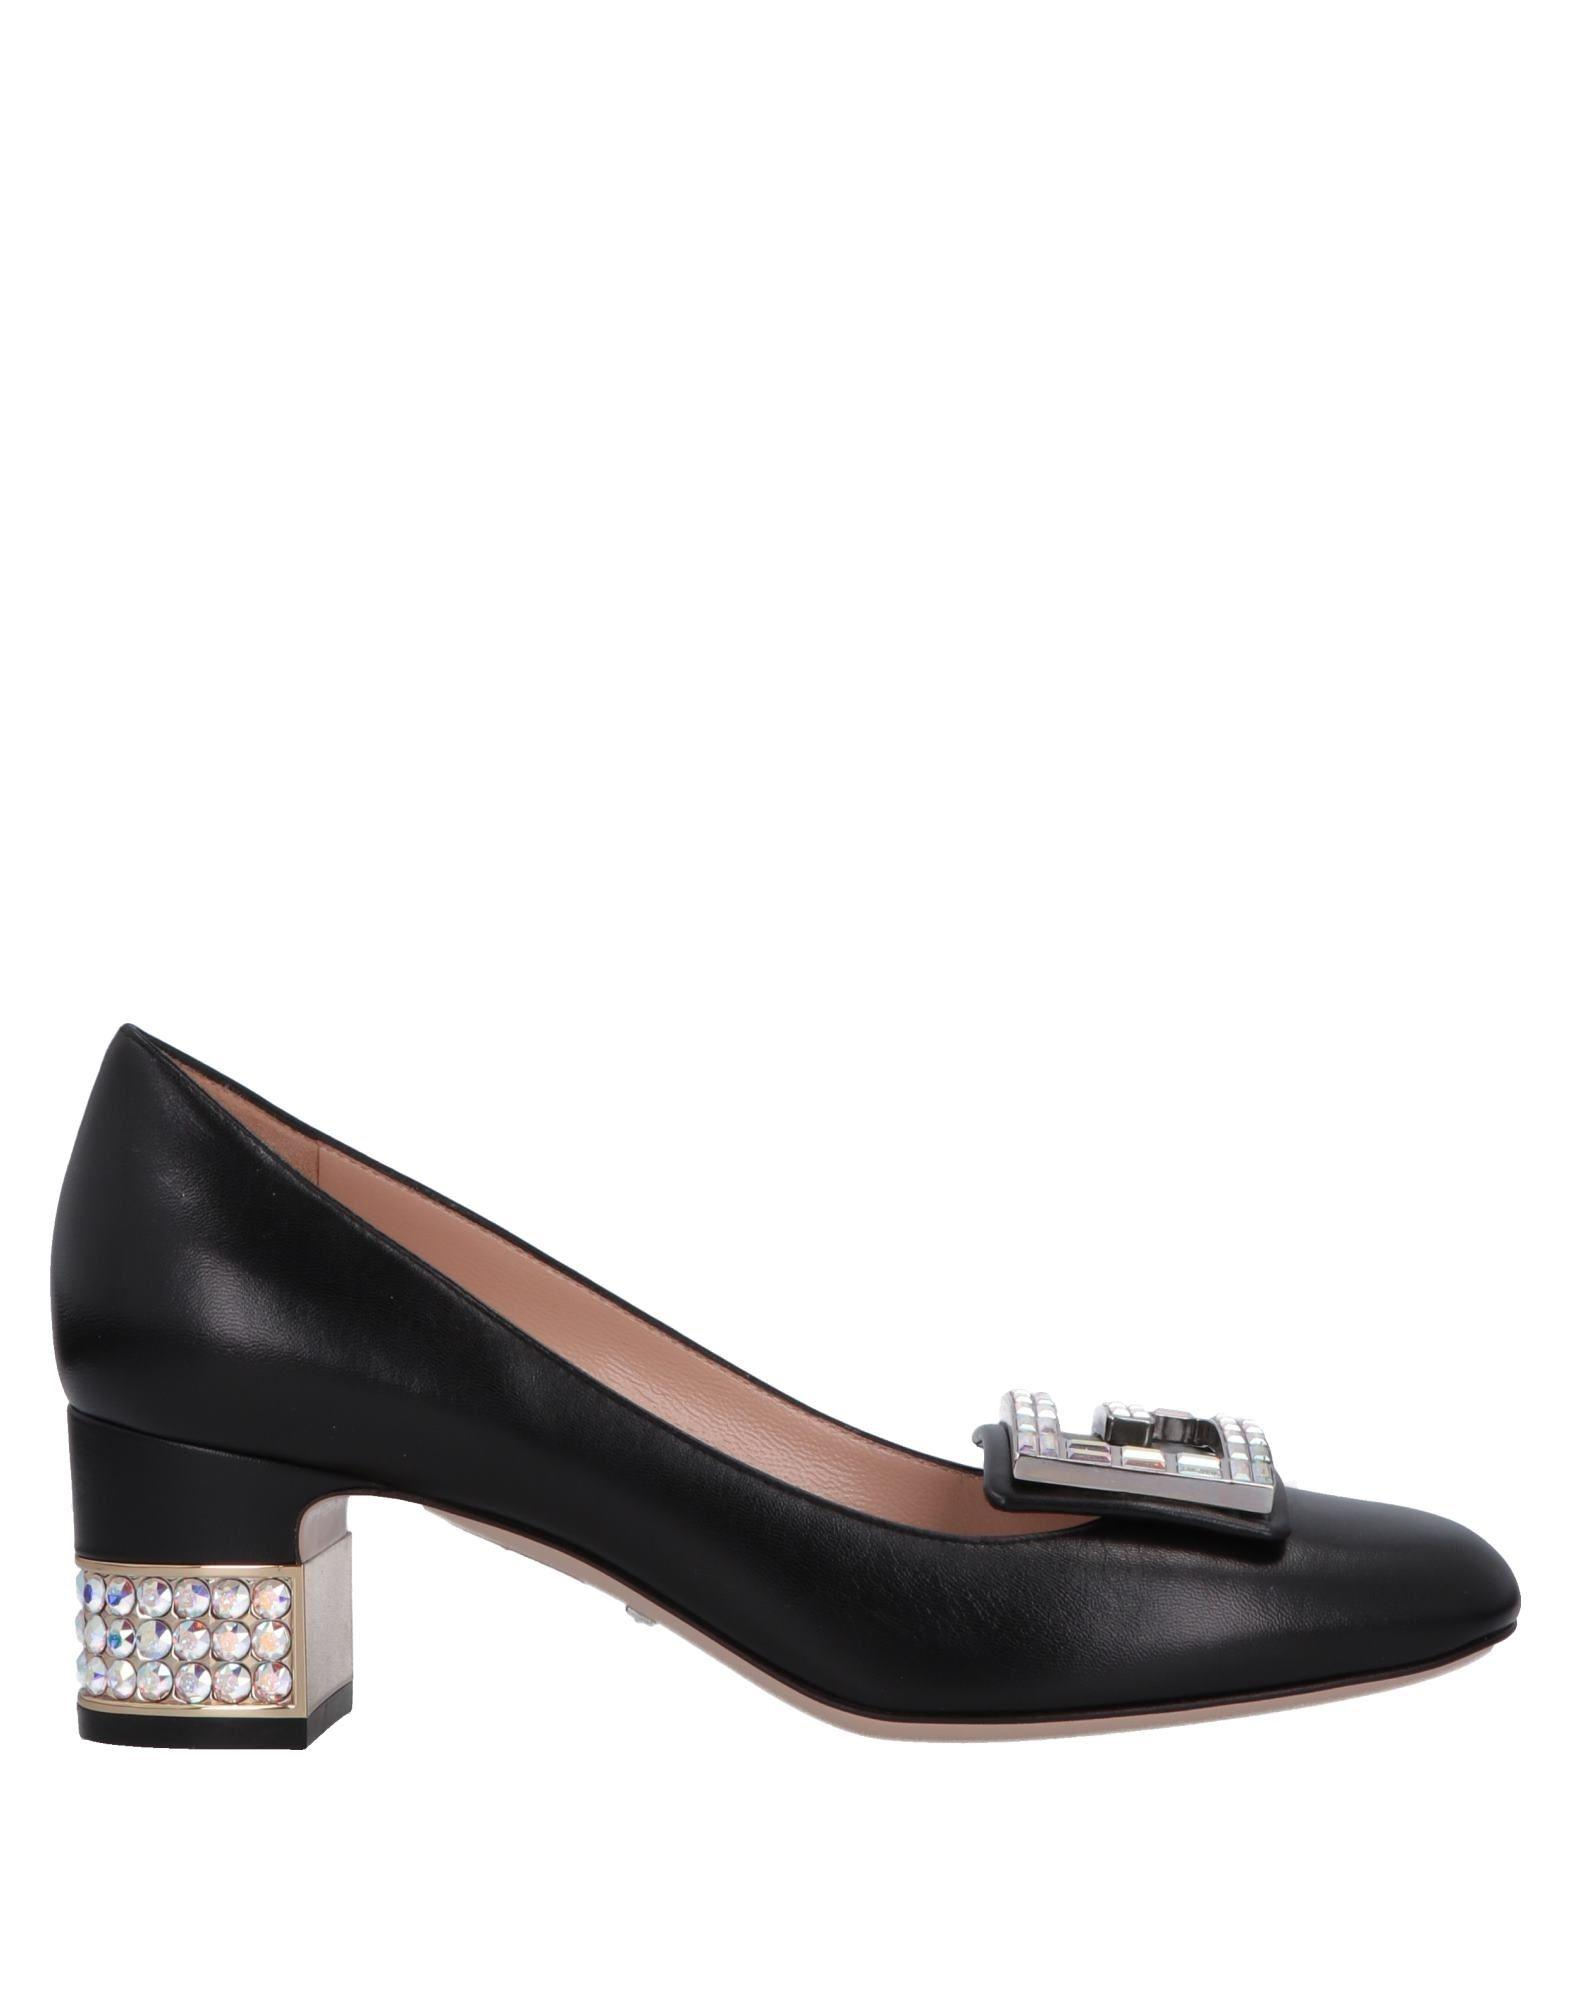 91fcdc74334 Lyst - Gucci Loafer in Black